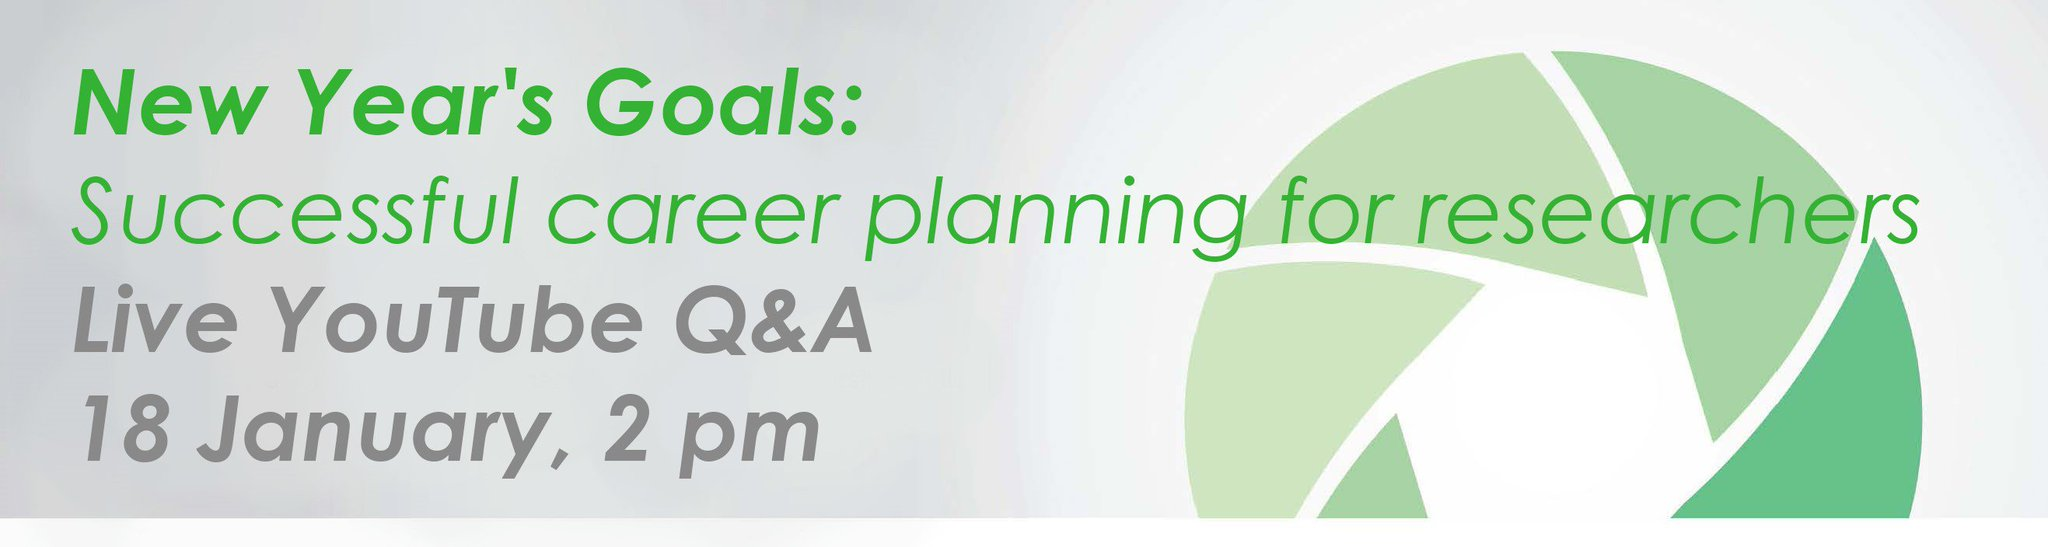 Thumbnail for New Year's Goals: Successful career planning for researchers #vitaehangout